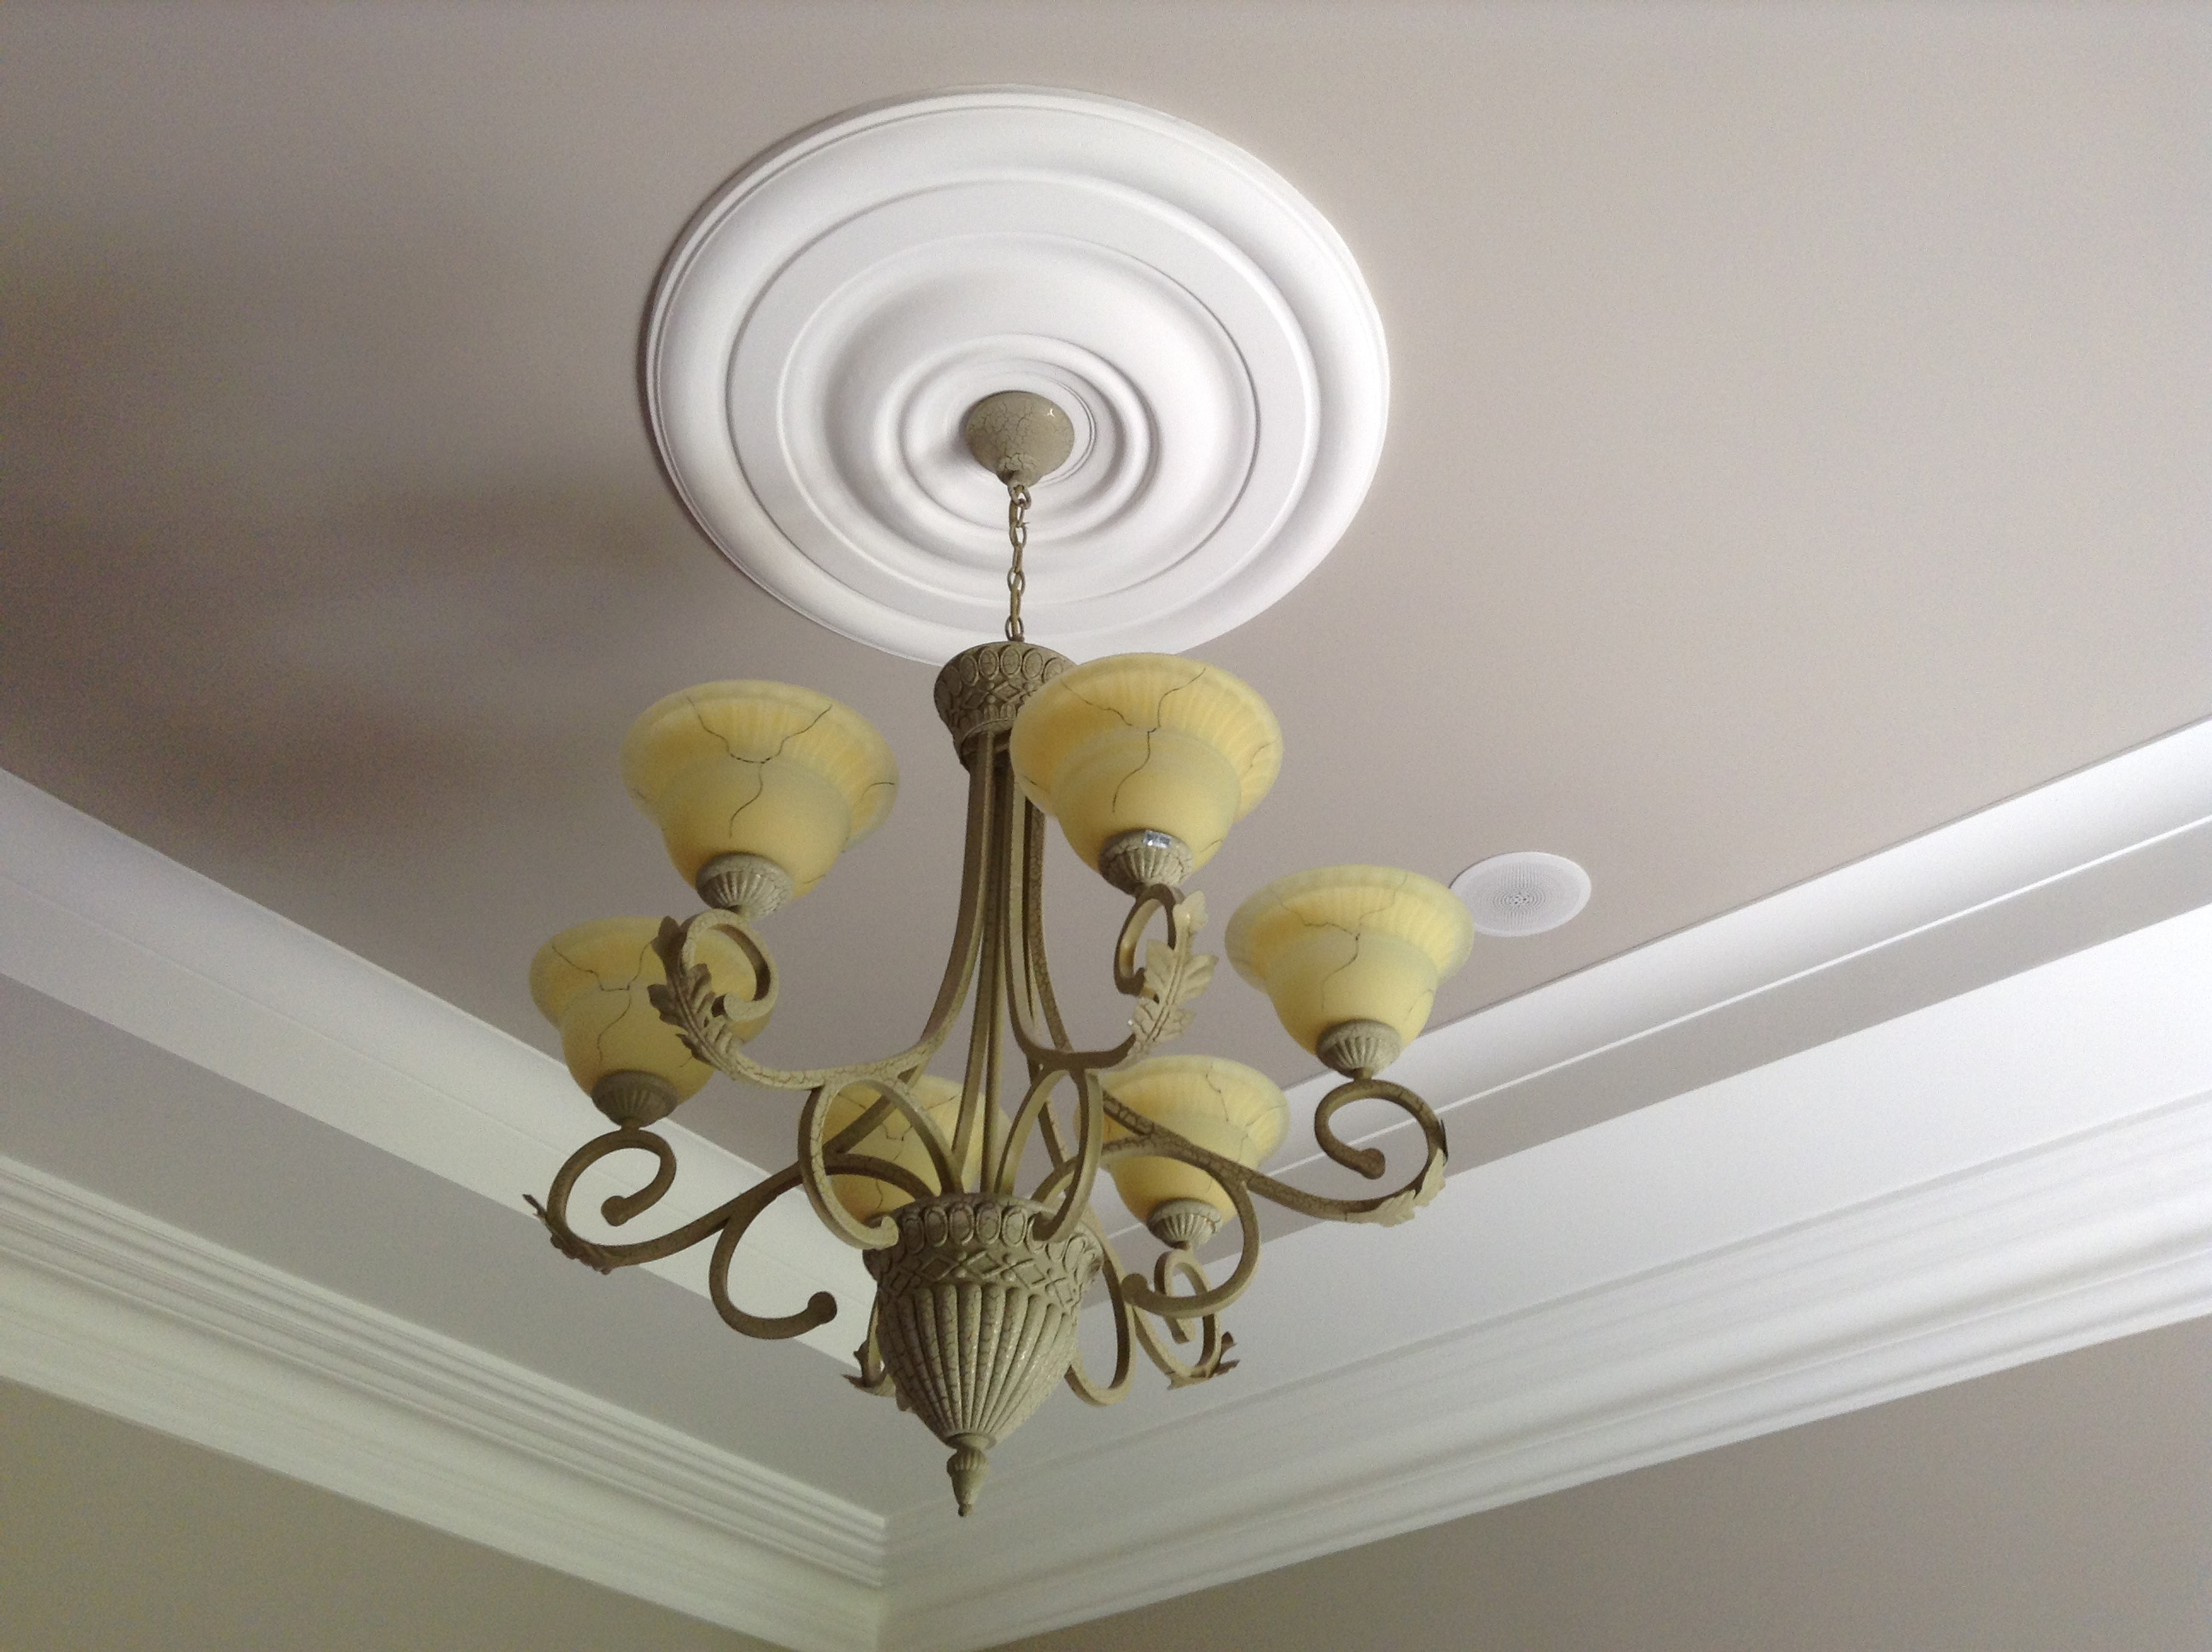 Plaster ceiling light surround ceiling designs ordinary ceiling light surround 4 and phase img 1072 molloy plaster mouldings cornice suppliers manufacturers tullamore aloadofball Images